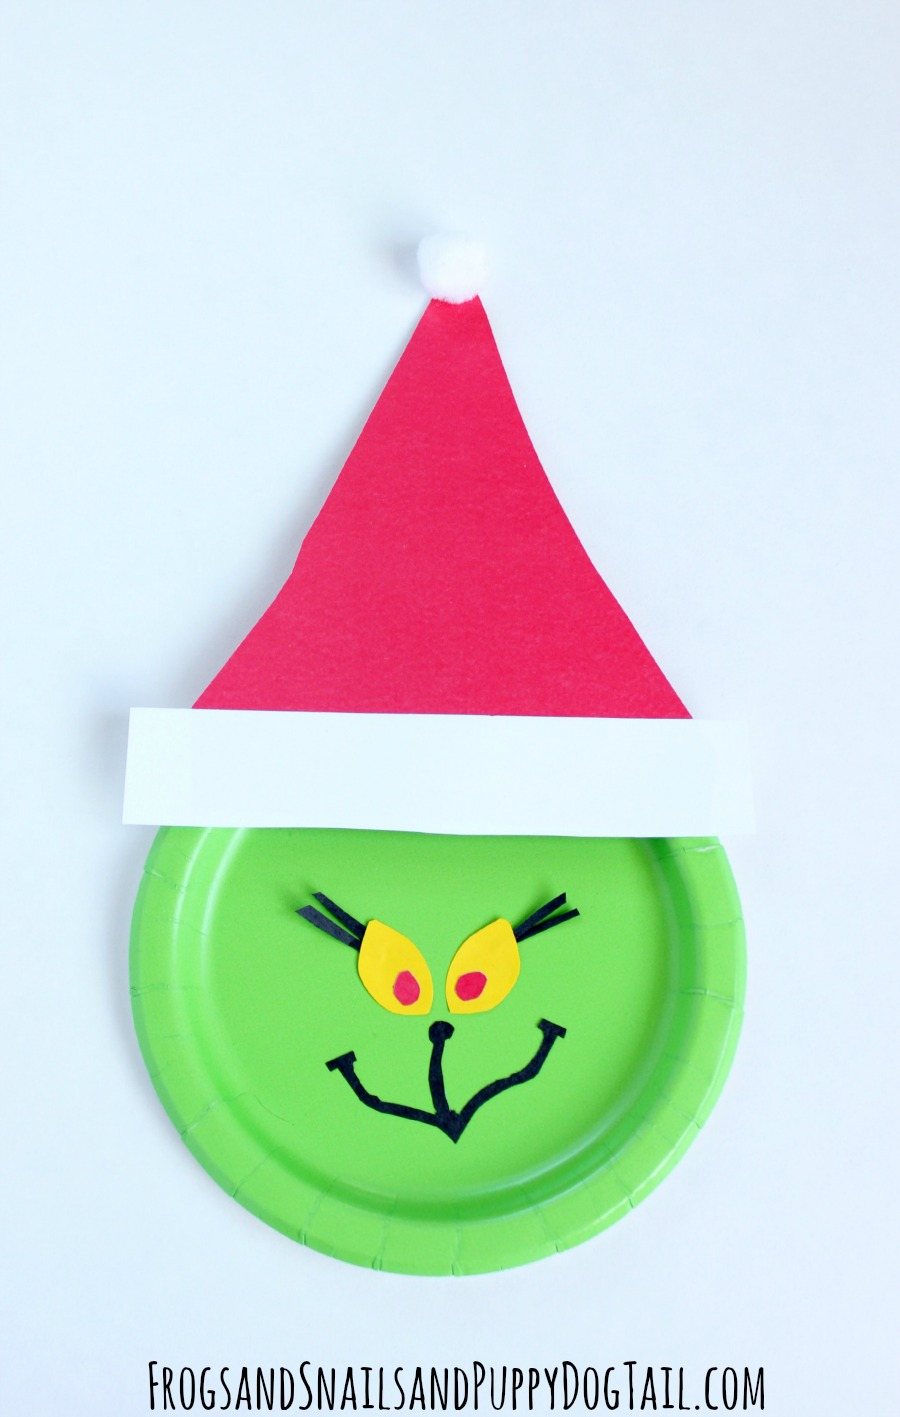 sc 1 st  Frogs and Snails and Puppy Dog Tails & Grinch Paper Plate Craft - FSPDT